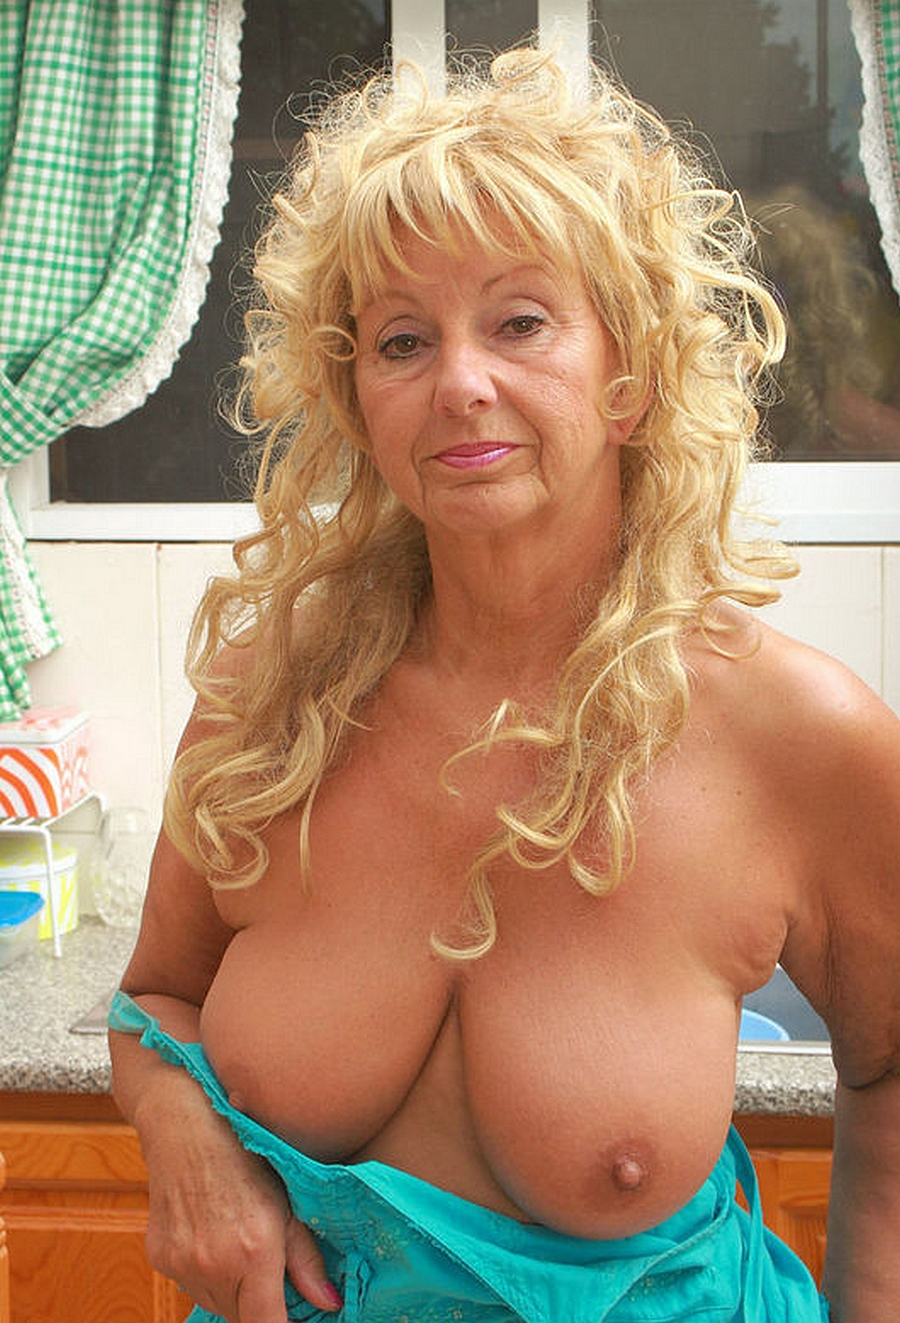 milf nue en photo sexe  032